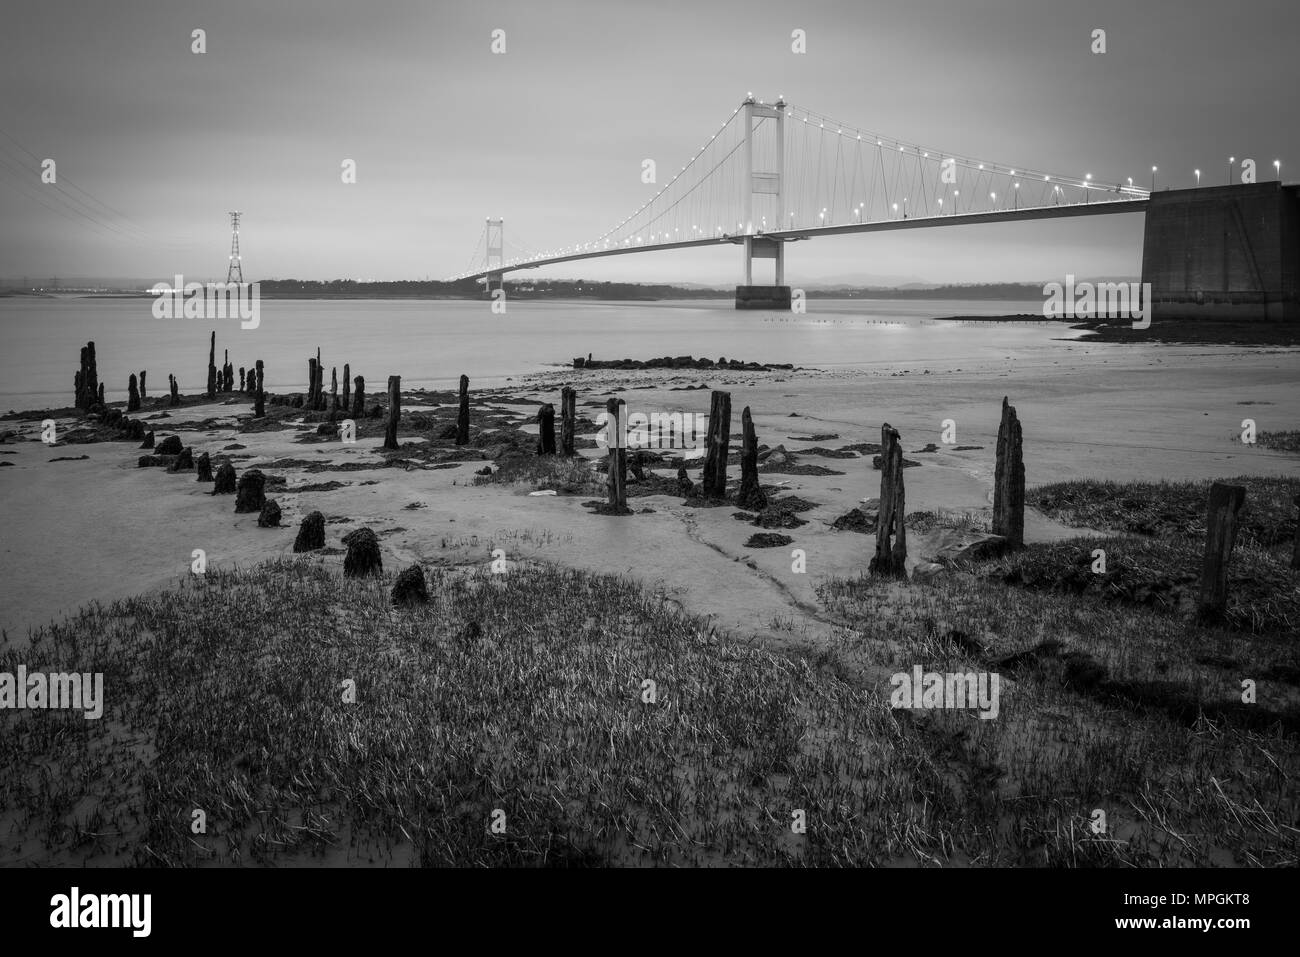 The Severn Bridge over the River Severn between England and Wales from the beach at Aust, Gloucestershire. - Stock Image